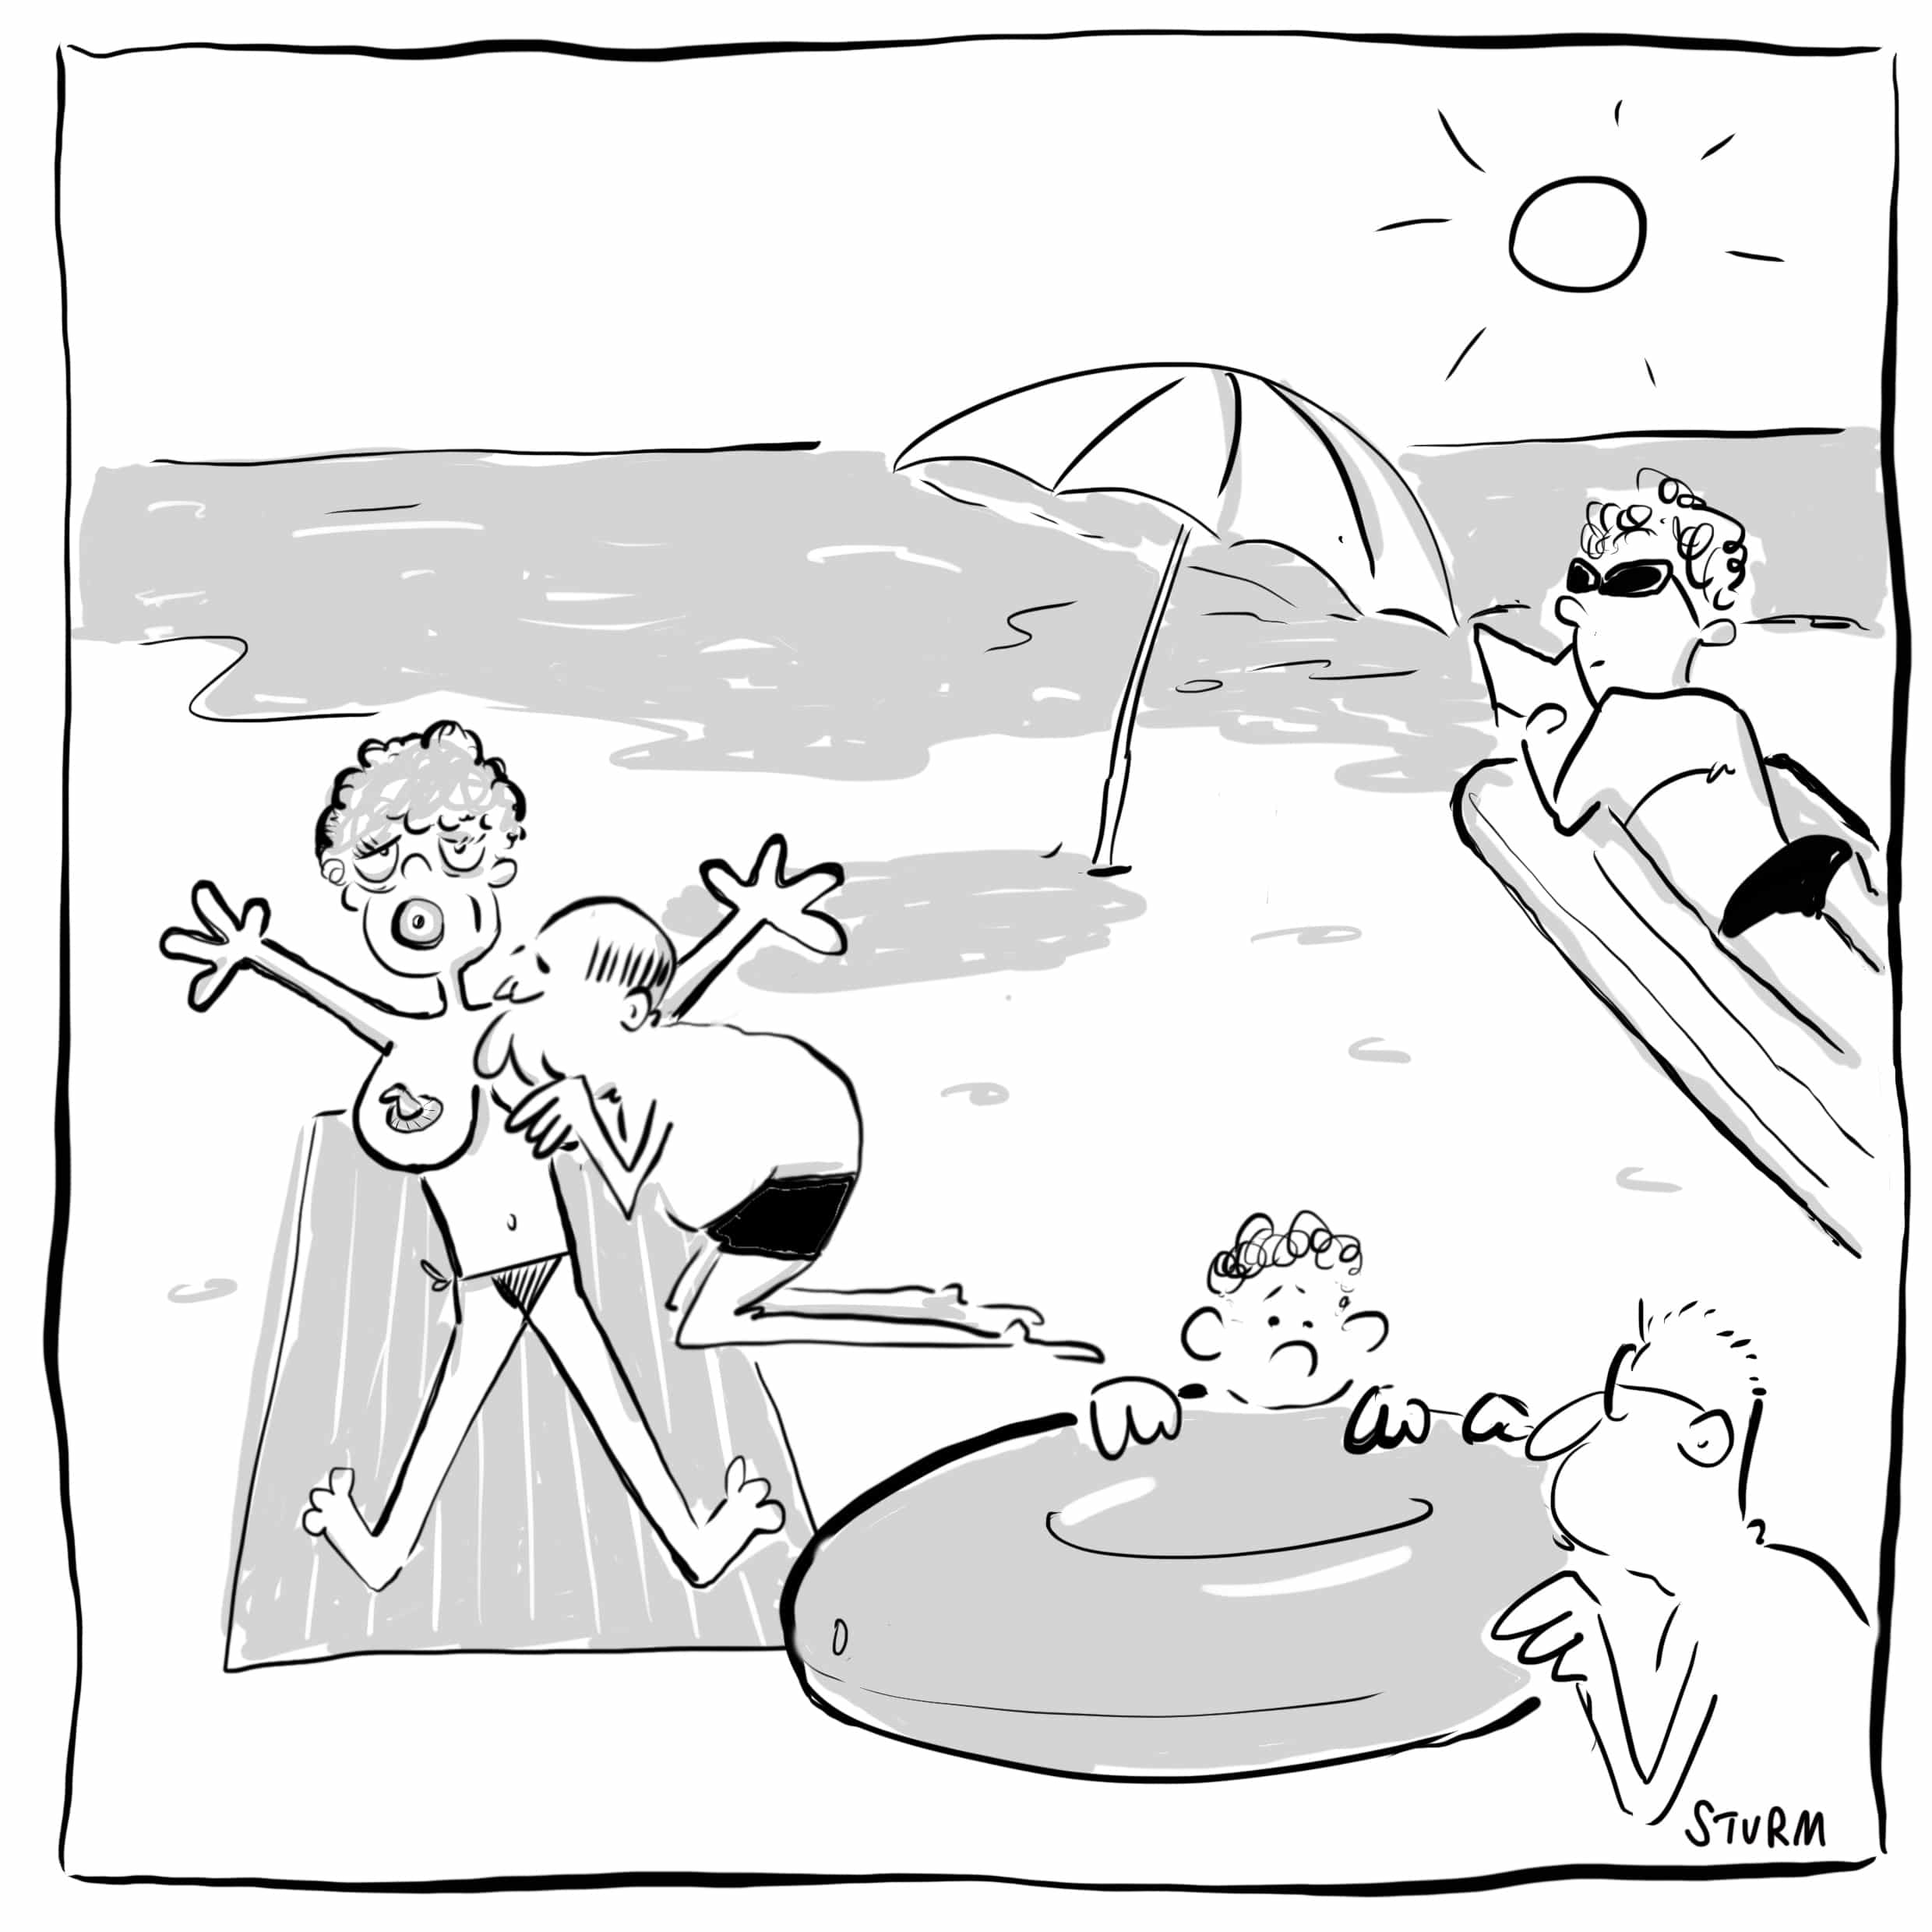 Sexpuppe am Strand – Cartoon Philipp Sturm